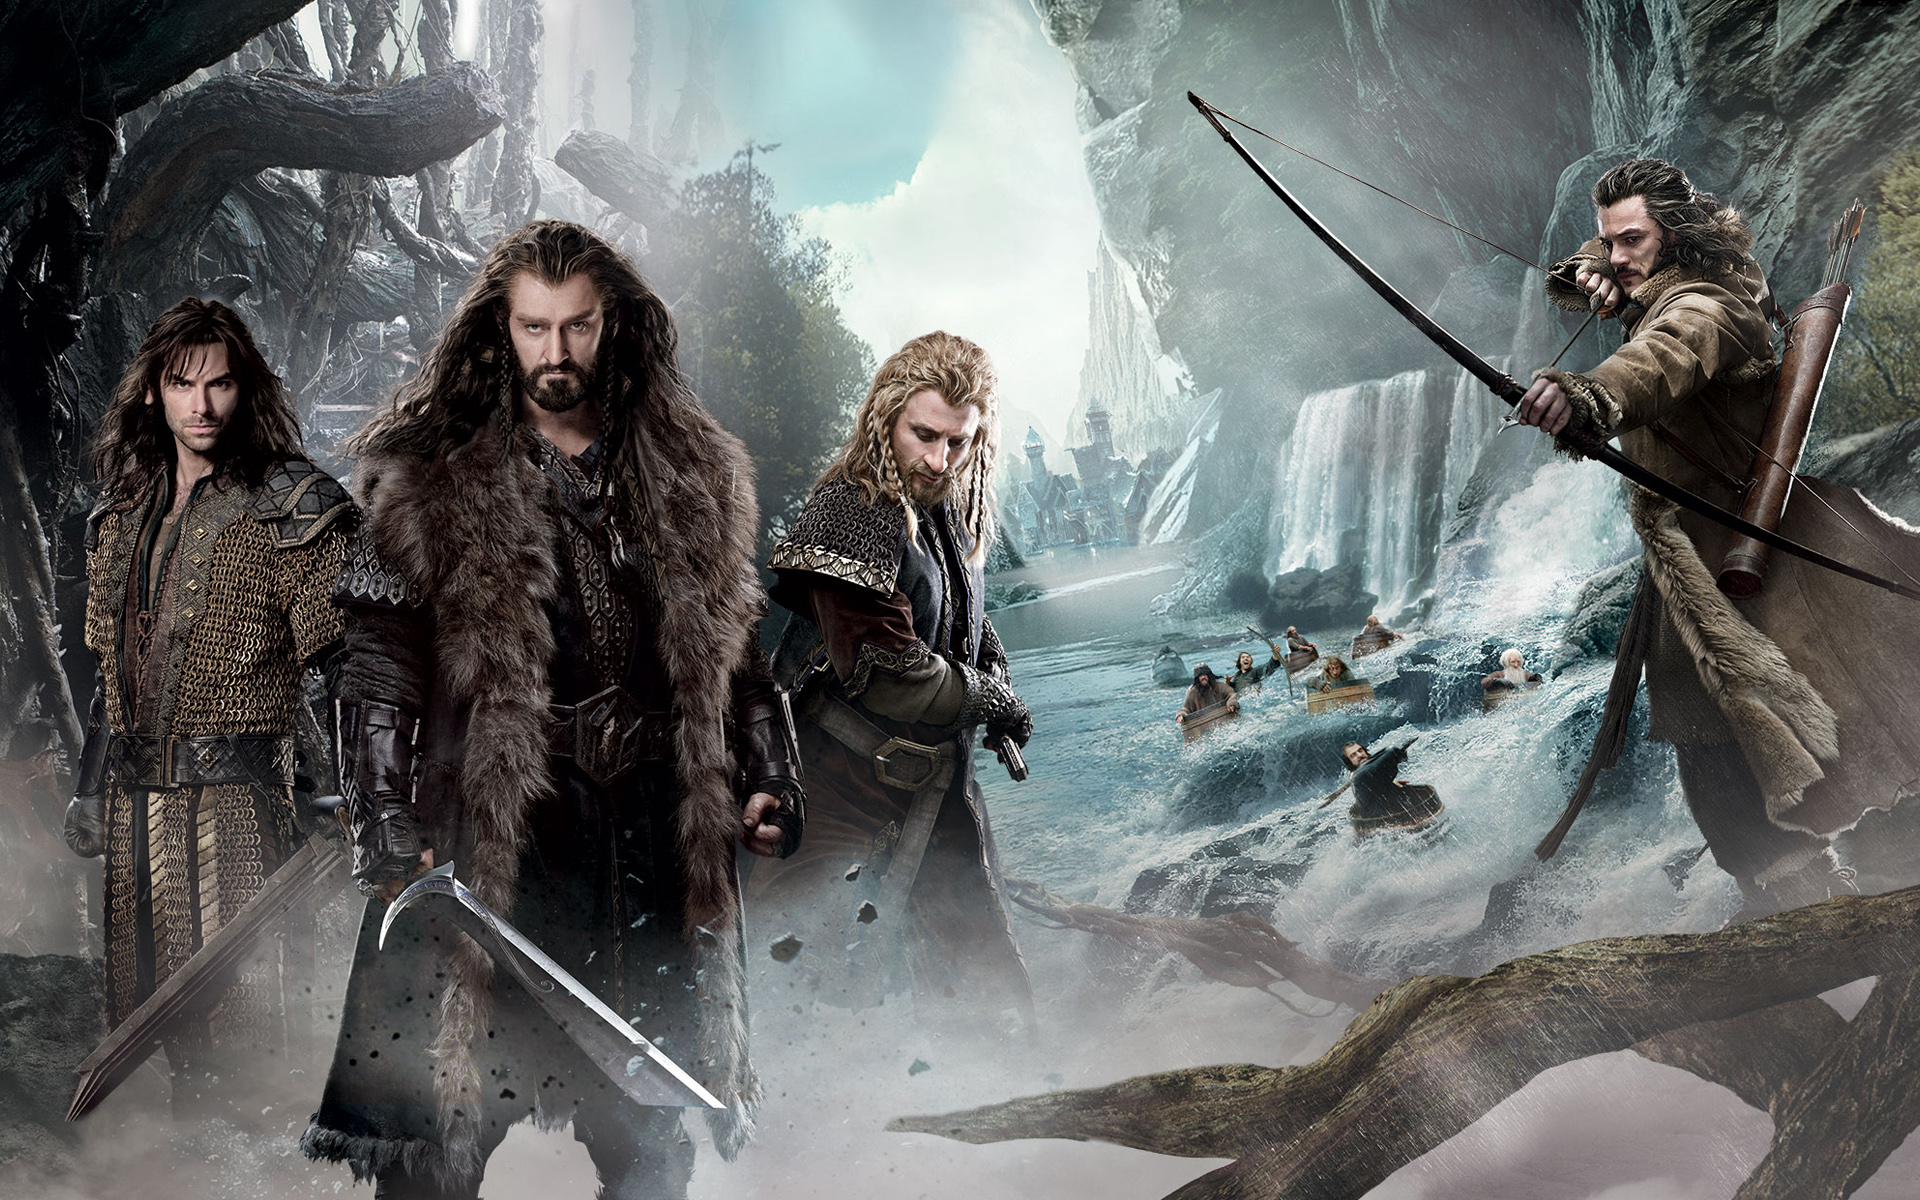 The Hobbit Desolation Of Smaug Wallpapers Awesome